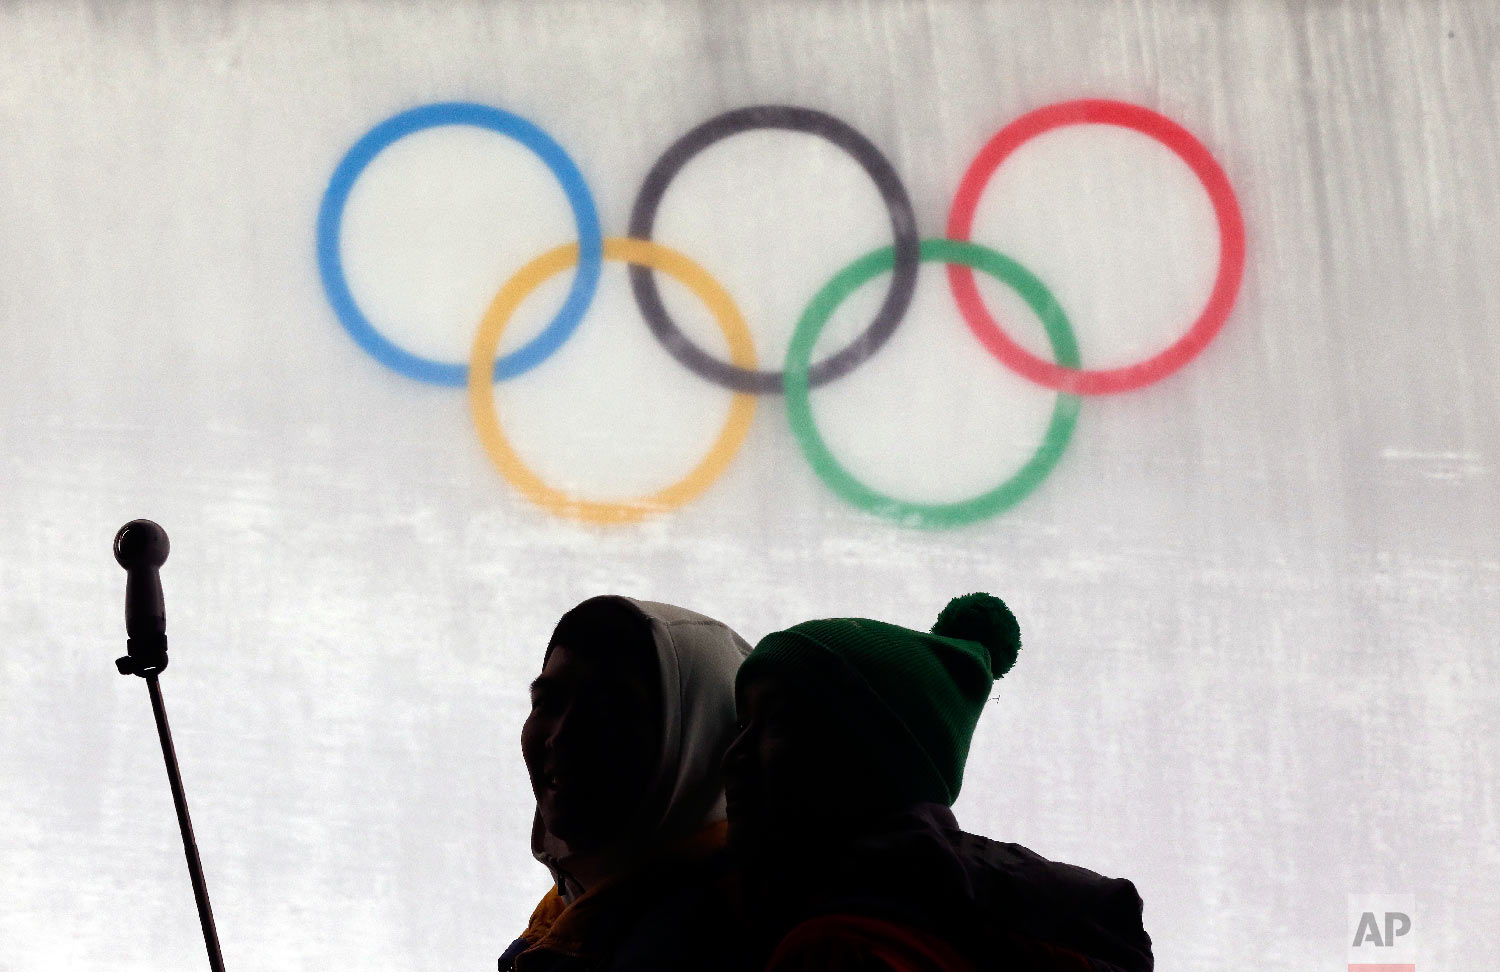 Fans take a photo during the men's luge at the 2018 Winter Olympics in Pyeongchang, South Korea, Saturday, Feb. 10, 2018. (AP Photo/Andy Wong)